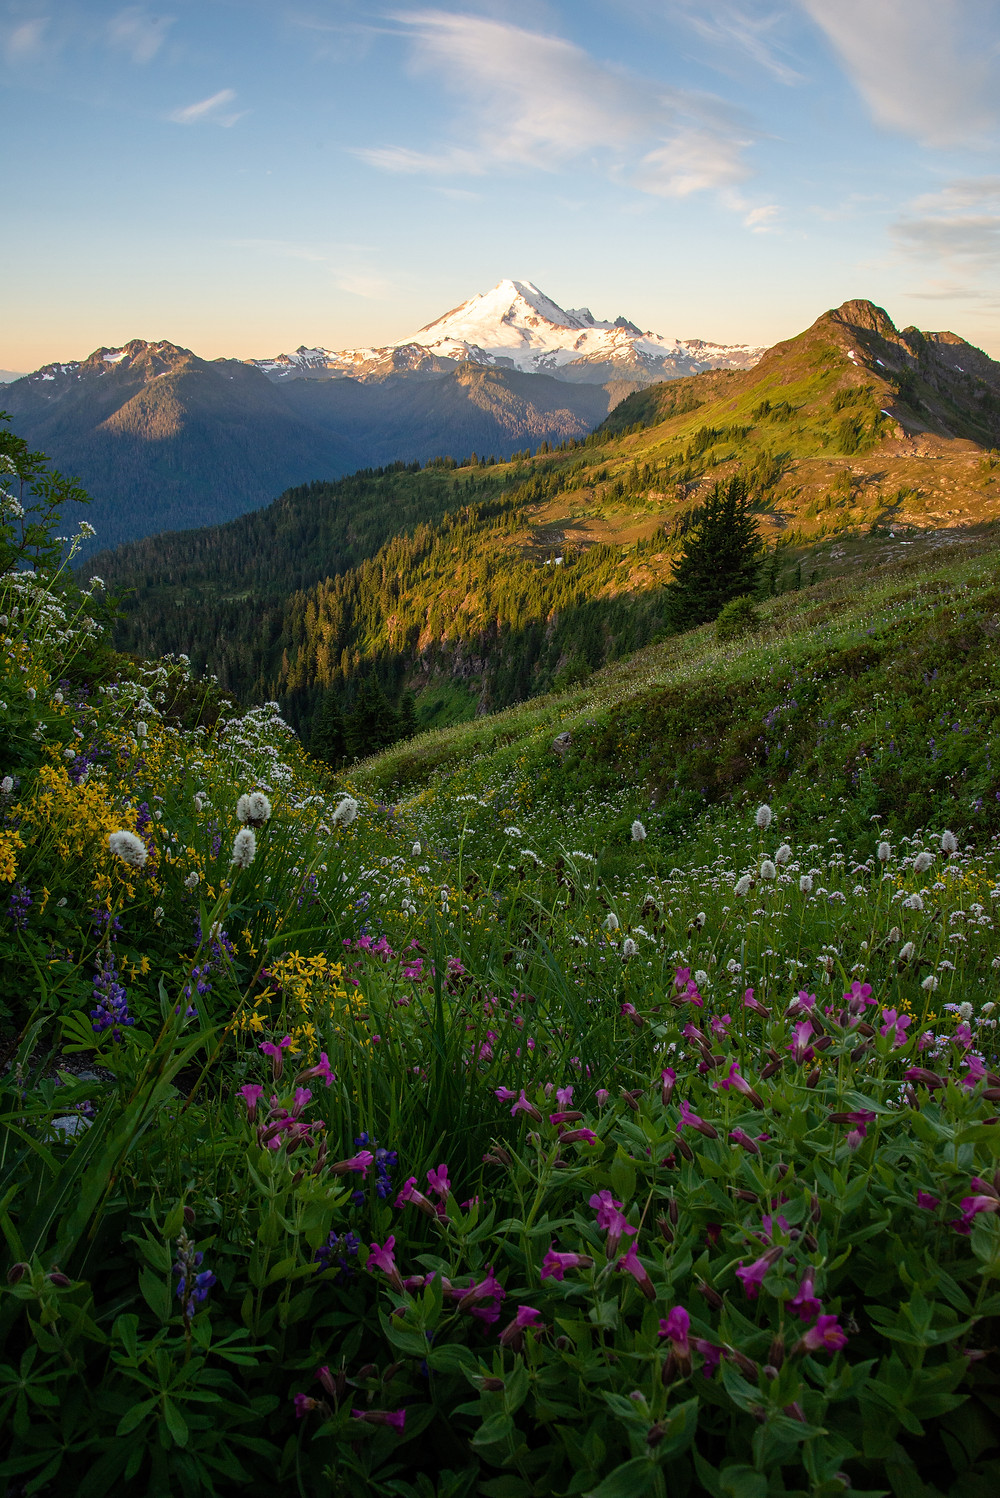 Wildflowers cover the slopes beneath Mount Baker in the Mount Baker Wilderness in Washington.